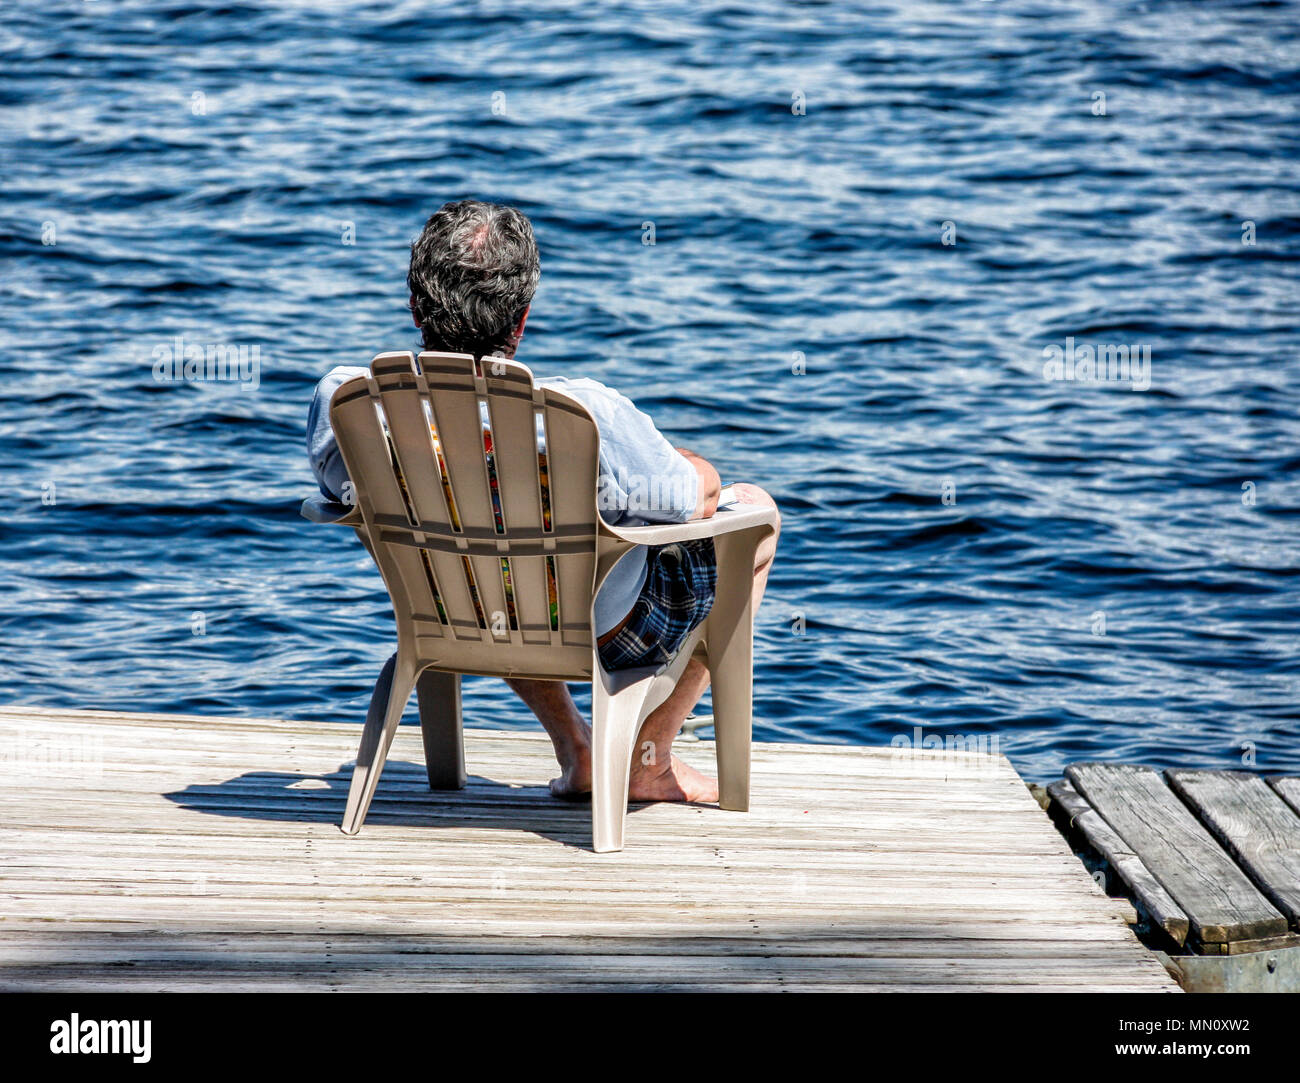 A relaxing, restful sun-lit image from behind of a man lounging in a chair at the end of a small wooden dock in front of the clearest blue lake. - Stock Image